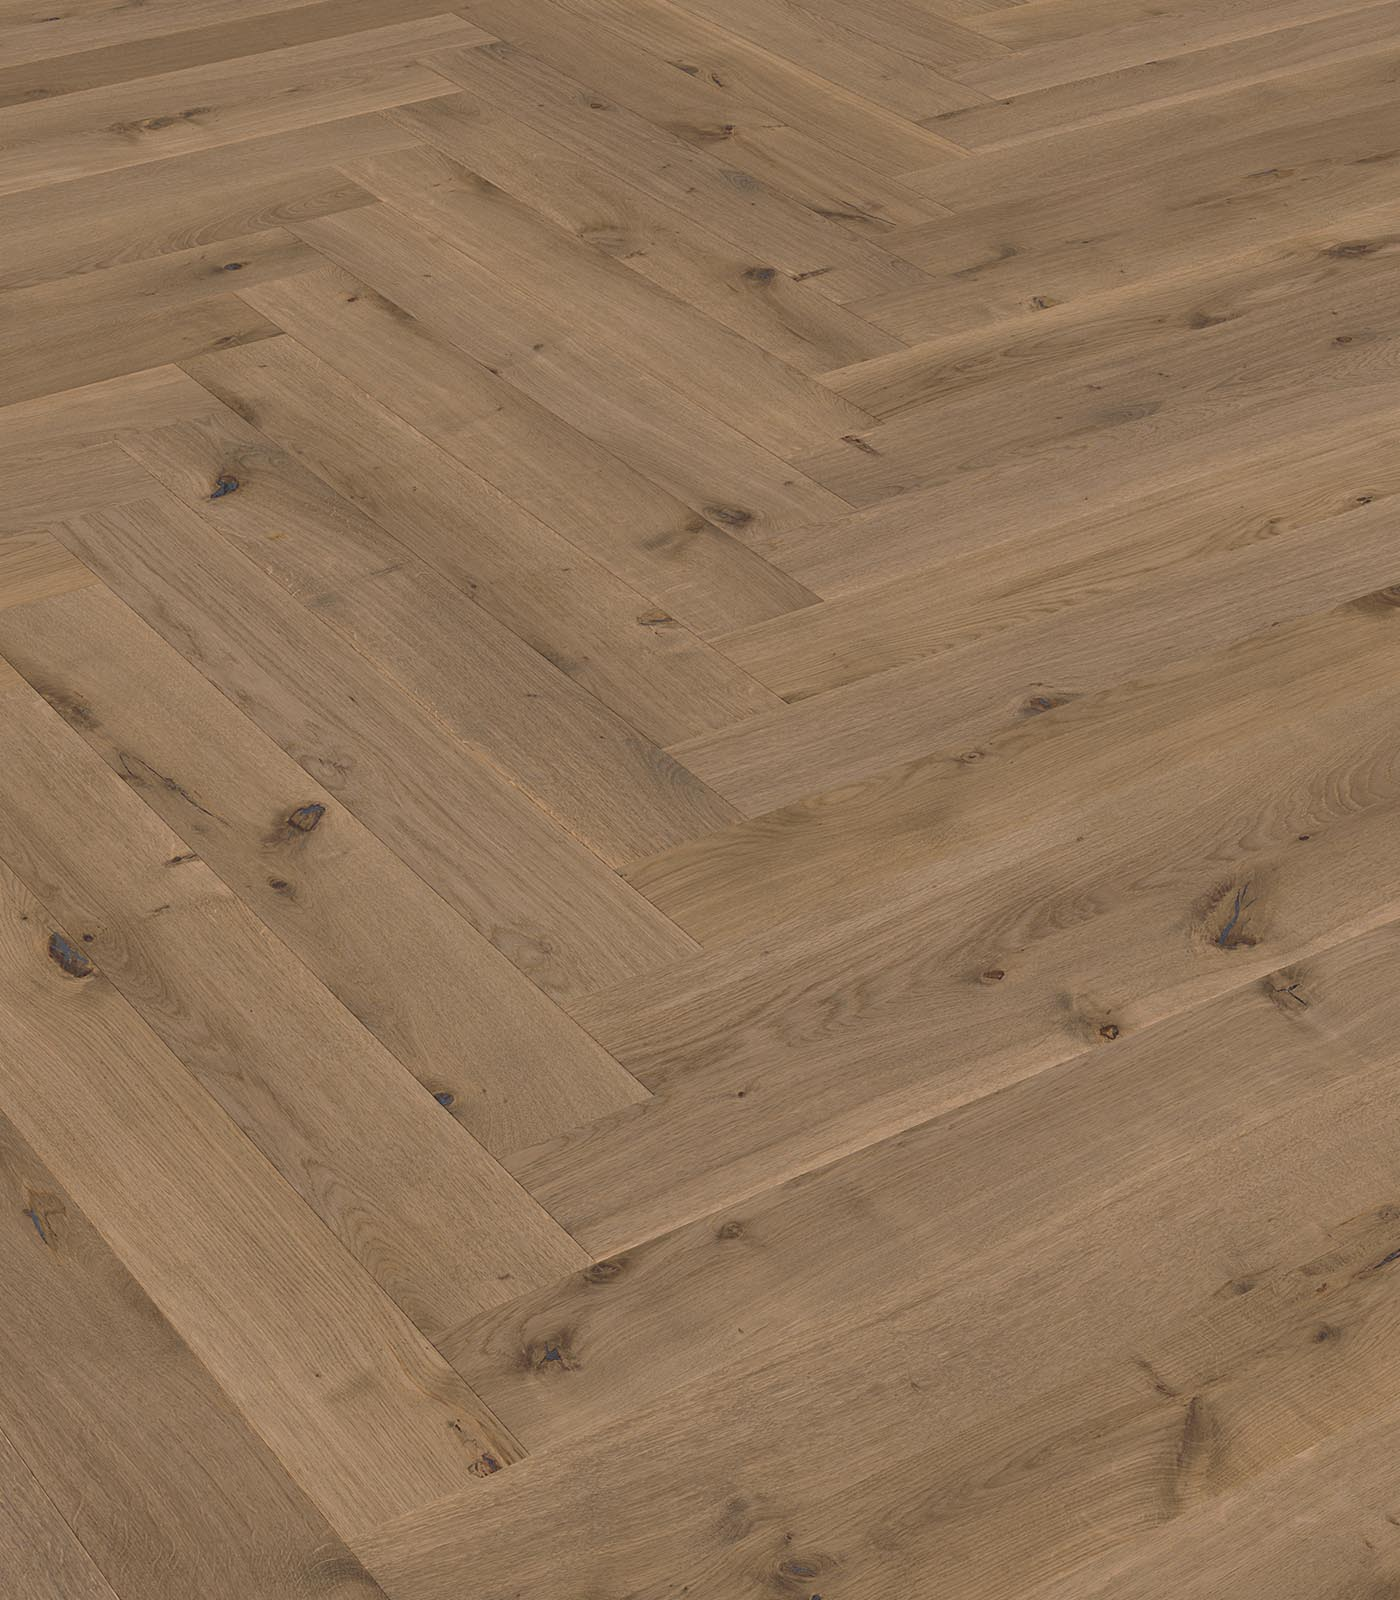 Cairns-Fashion Collection-European Herringbone Oak floors-angle